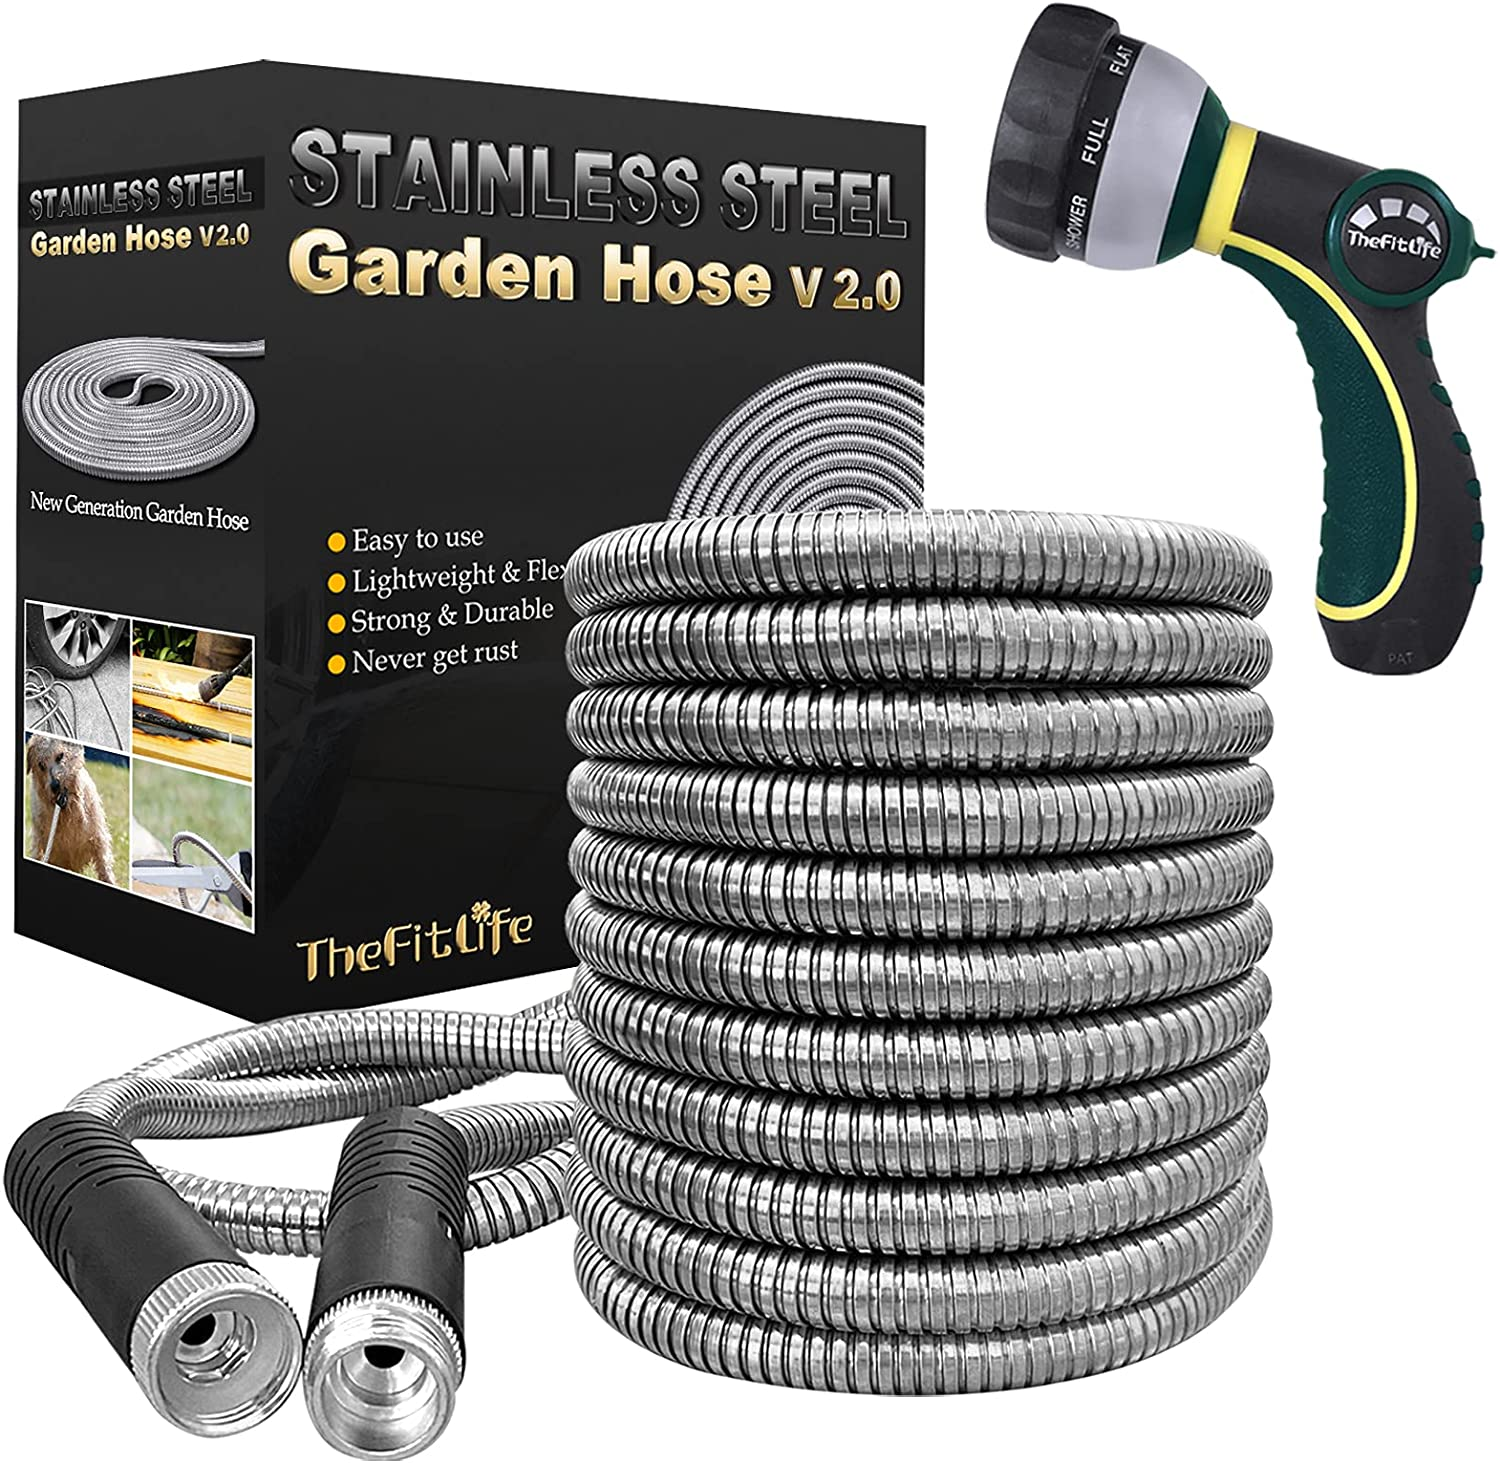 TheFitLife Flexible Metal Garden Hose - Upgrade Leak and Fray Resistant Design, Stainless Steel Water Hose with Solid Fittings and Sprayer Nozzle, Lightweight Kink Free Durable Easy Storage (50 FT)